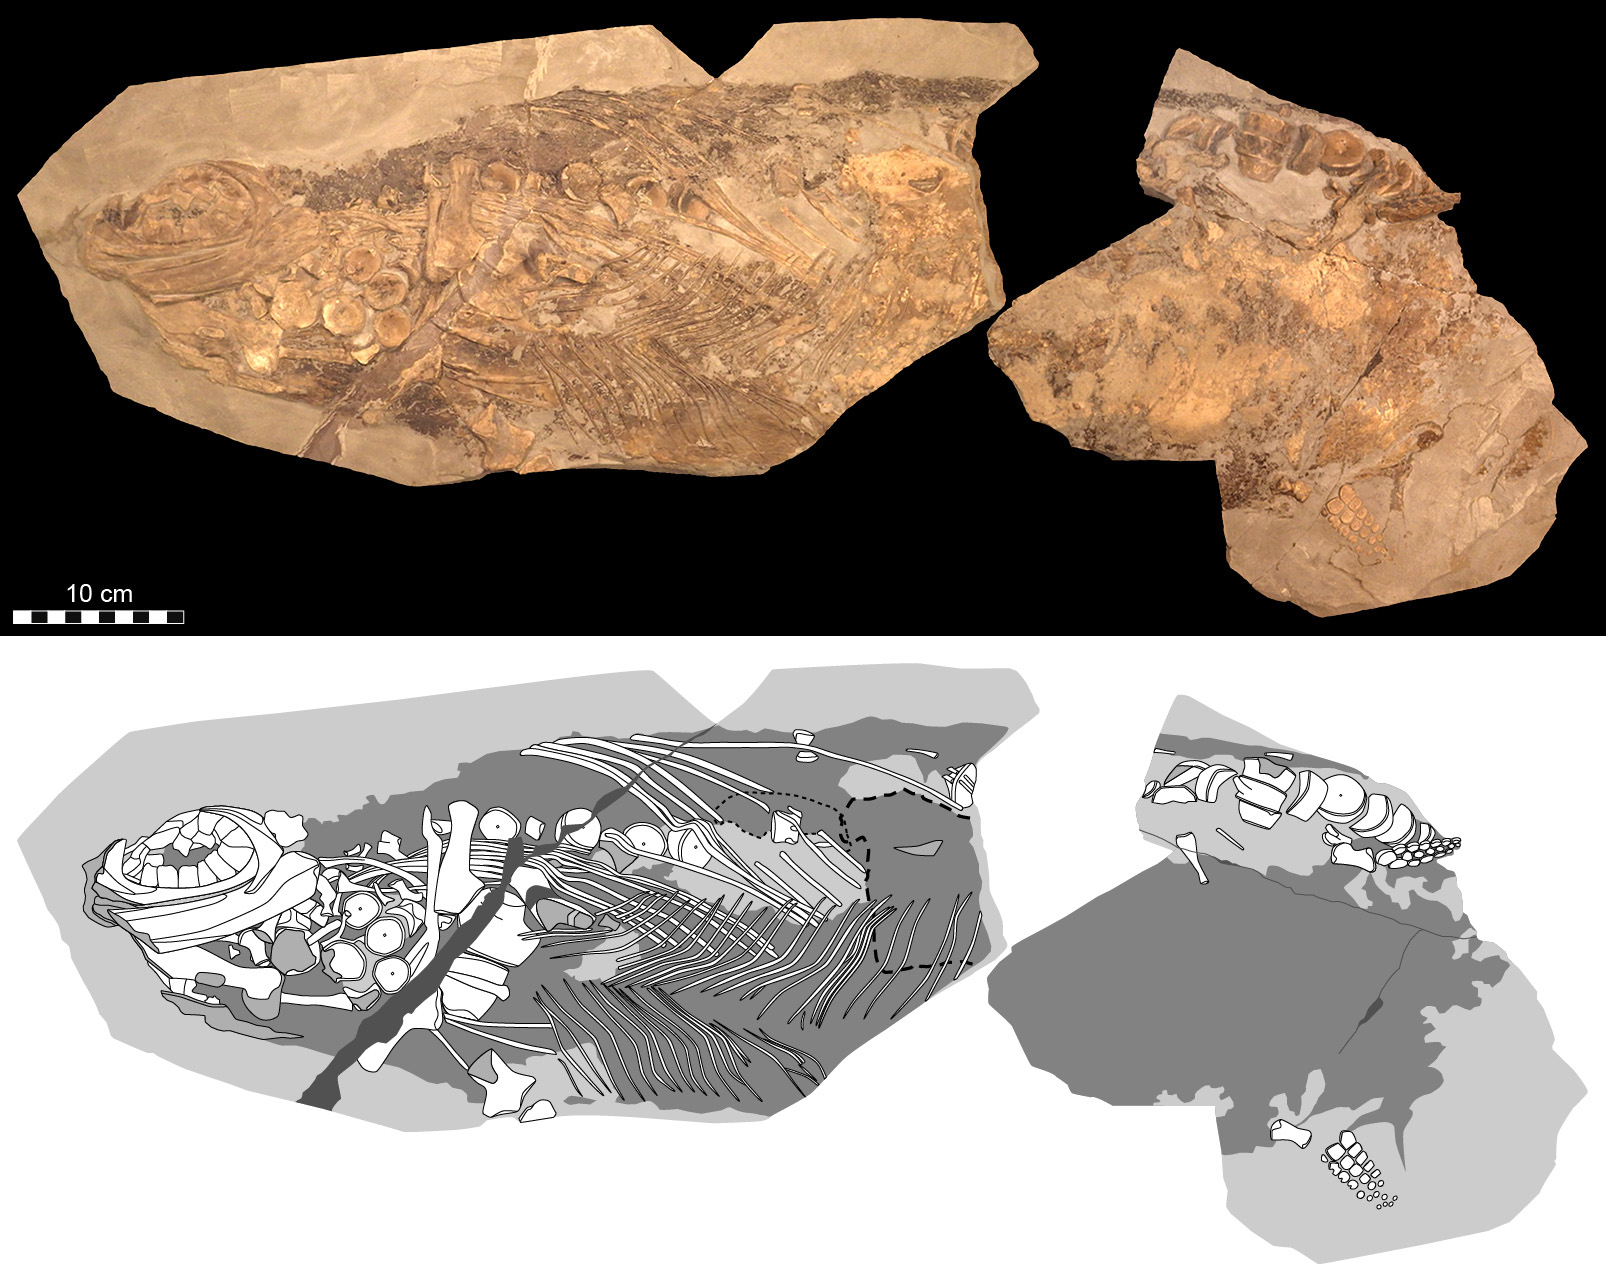 Cells, cellular organelles and original biomolecules have been discovered in preserved soft parts of an approximately 180-million-year-old ichthyosaur (literally 'fish-lizard'). Photographic (top) and diagrammatic (bottom) representation of the 85-cm-long fossil (which corresponds to roughly half of the original length of the animal).